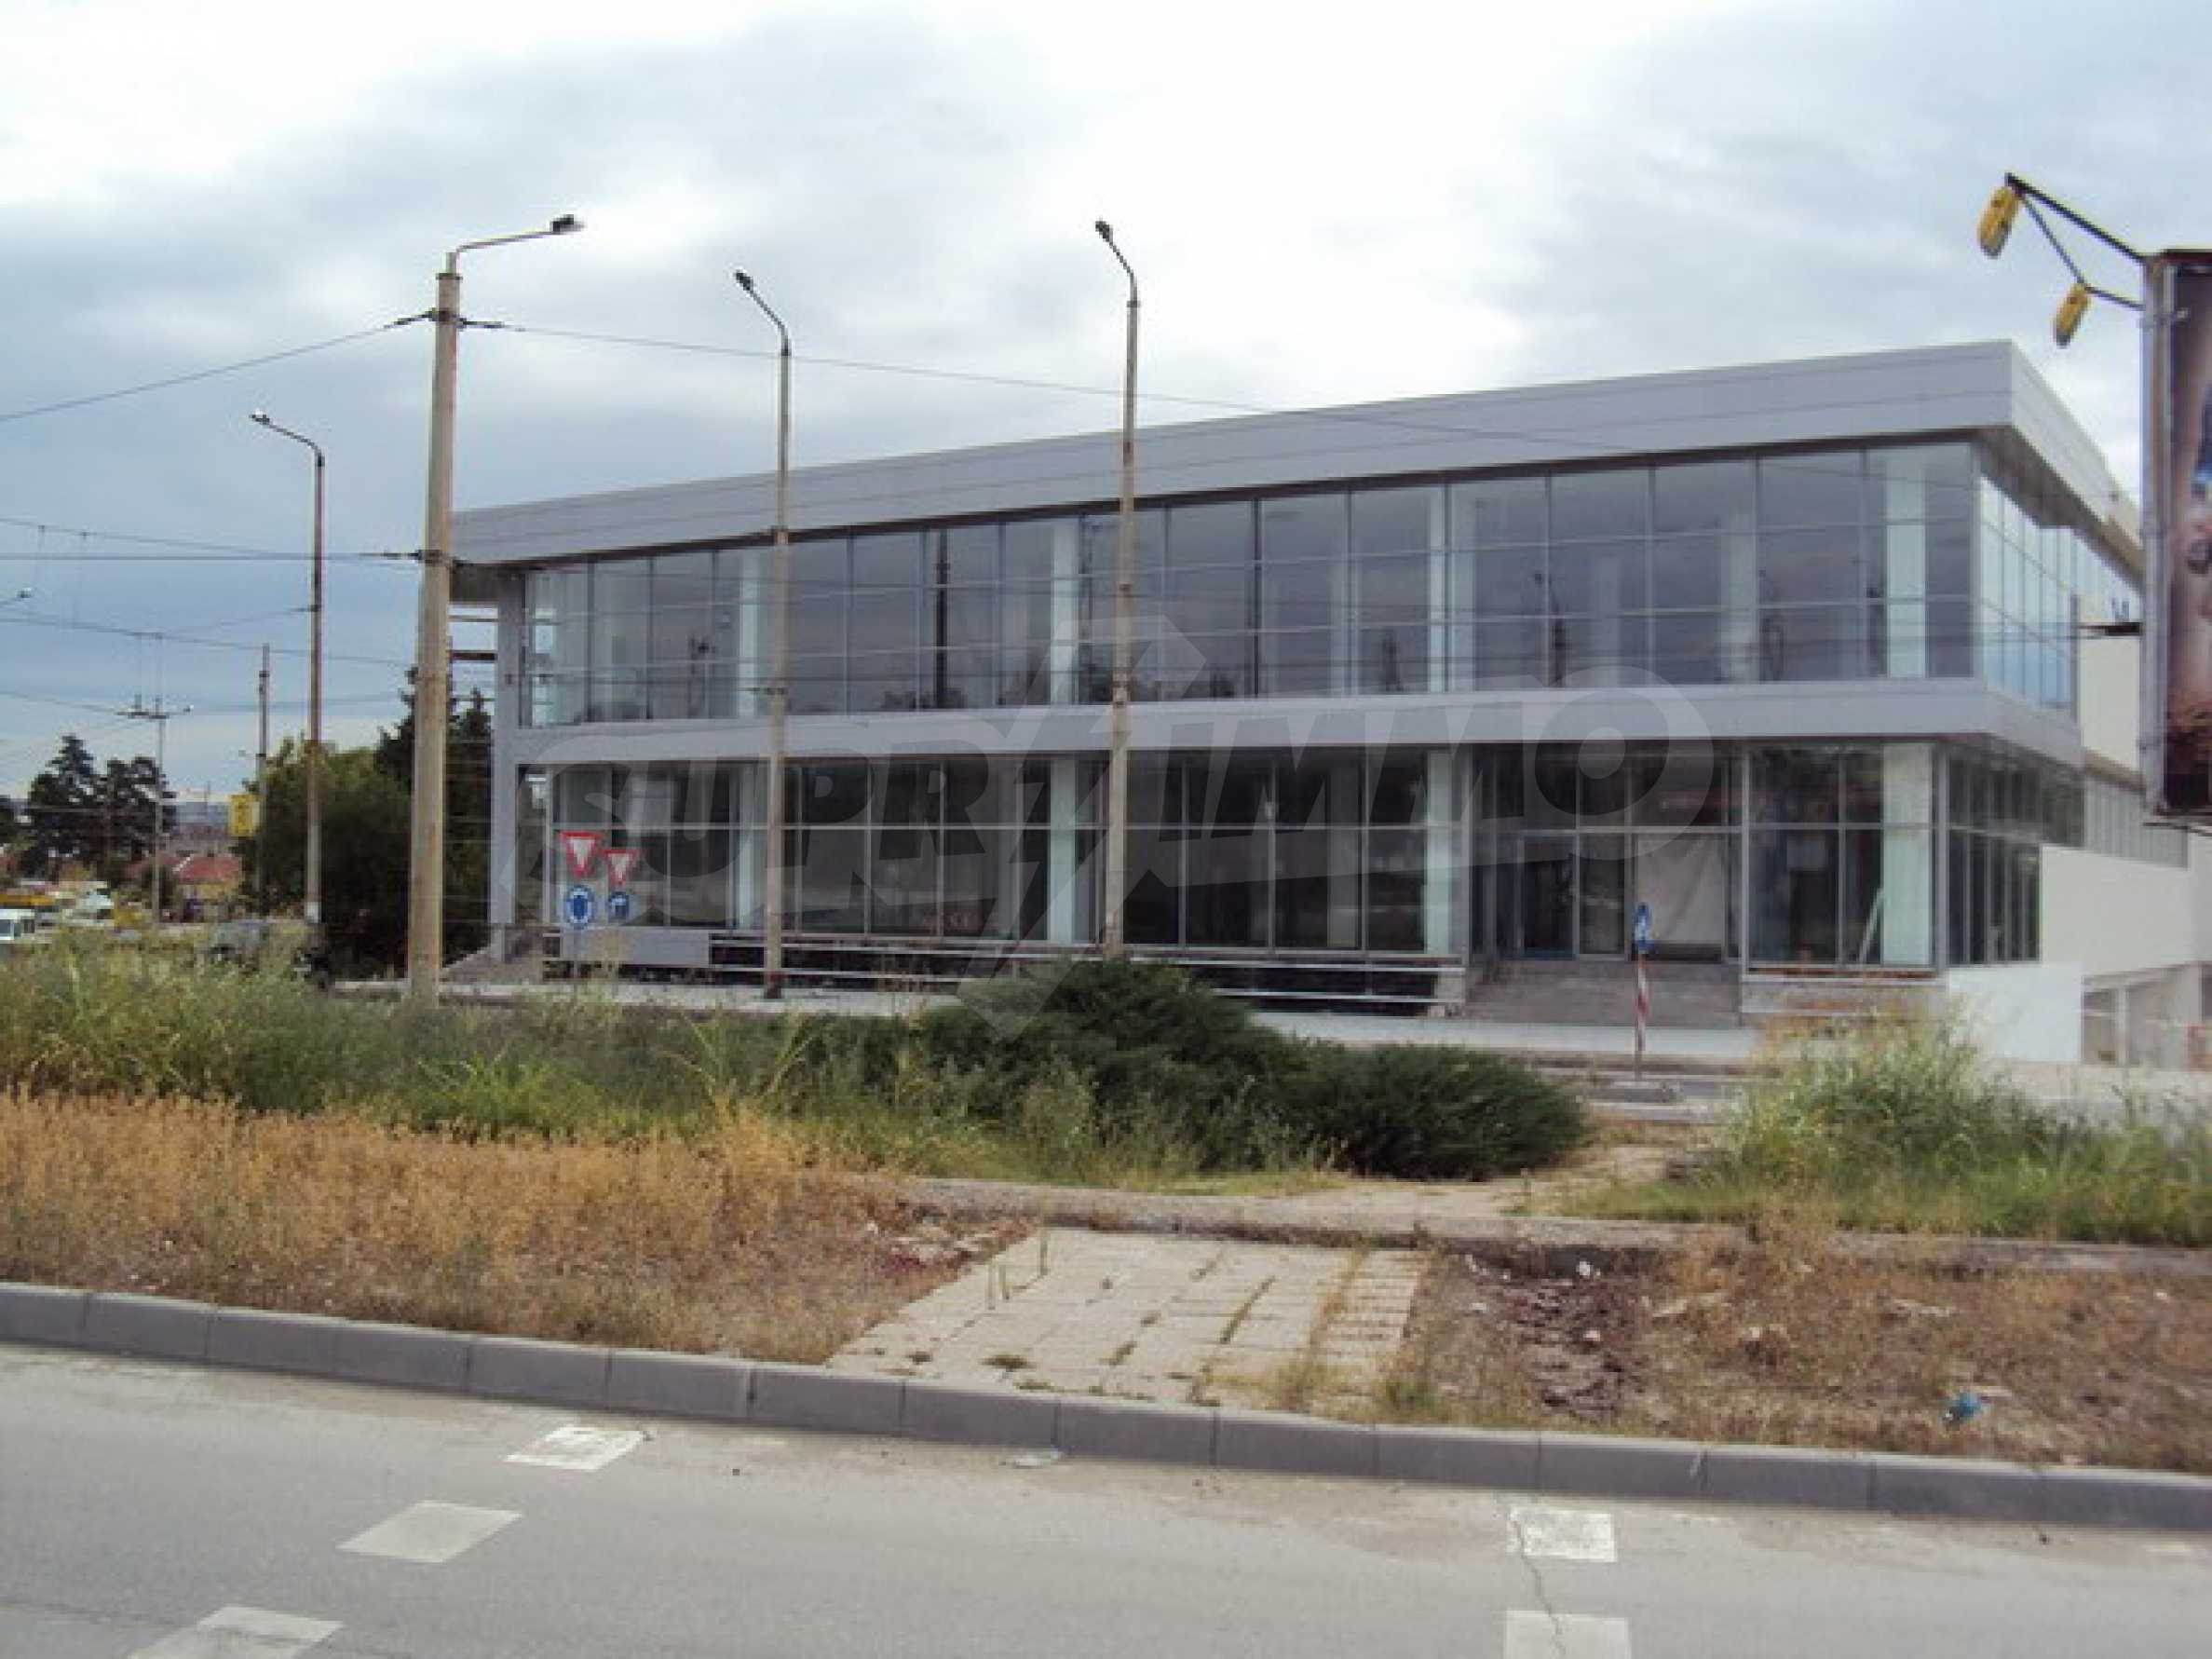 Complex with shops, offices and warehouses